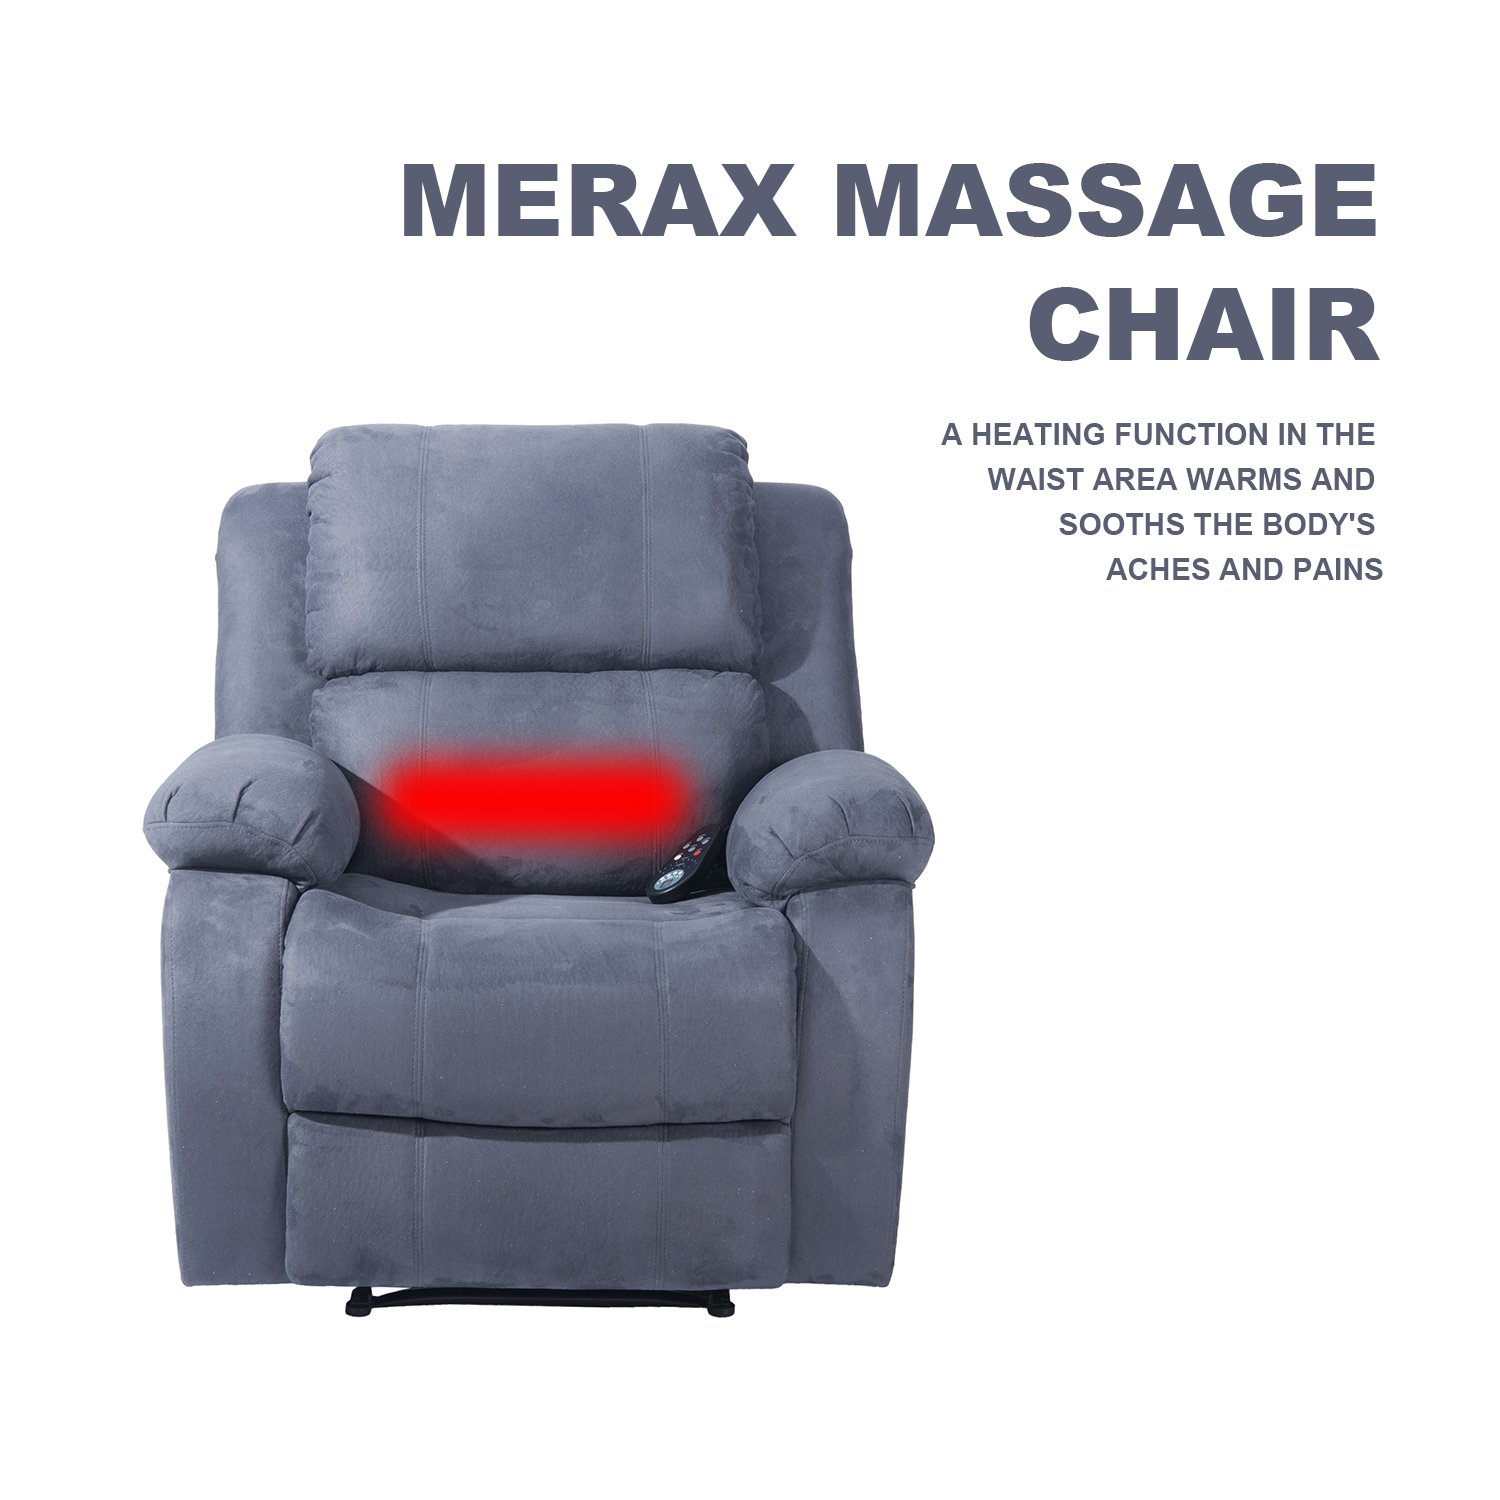 Merax Suede Heated Massage Recliner Sofa Chair Ergonomic Lounge with 8 Vibration Motors, Grey by Merax (Image #4)